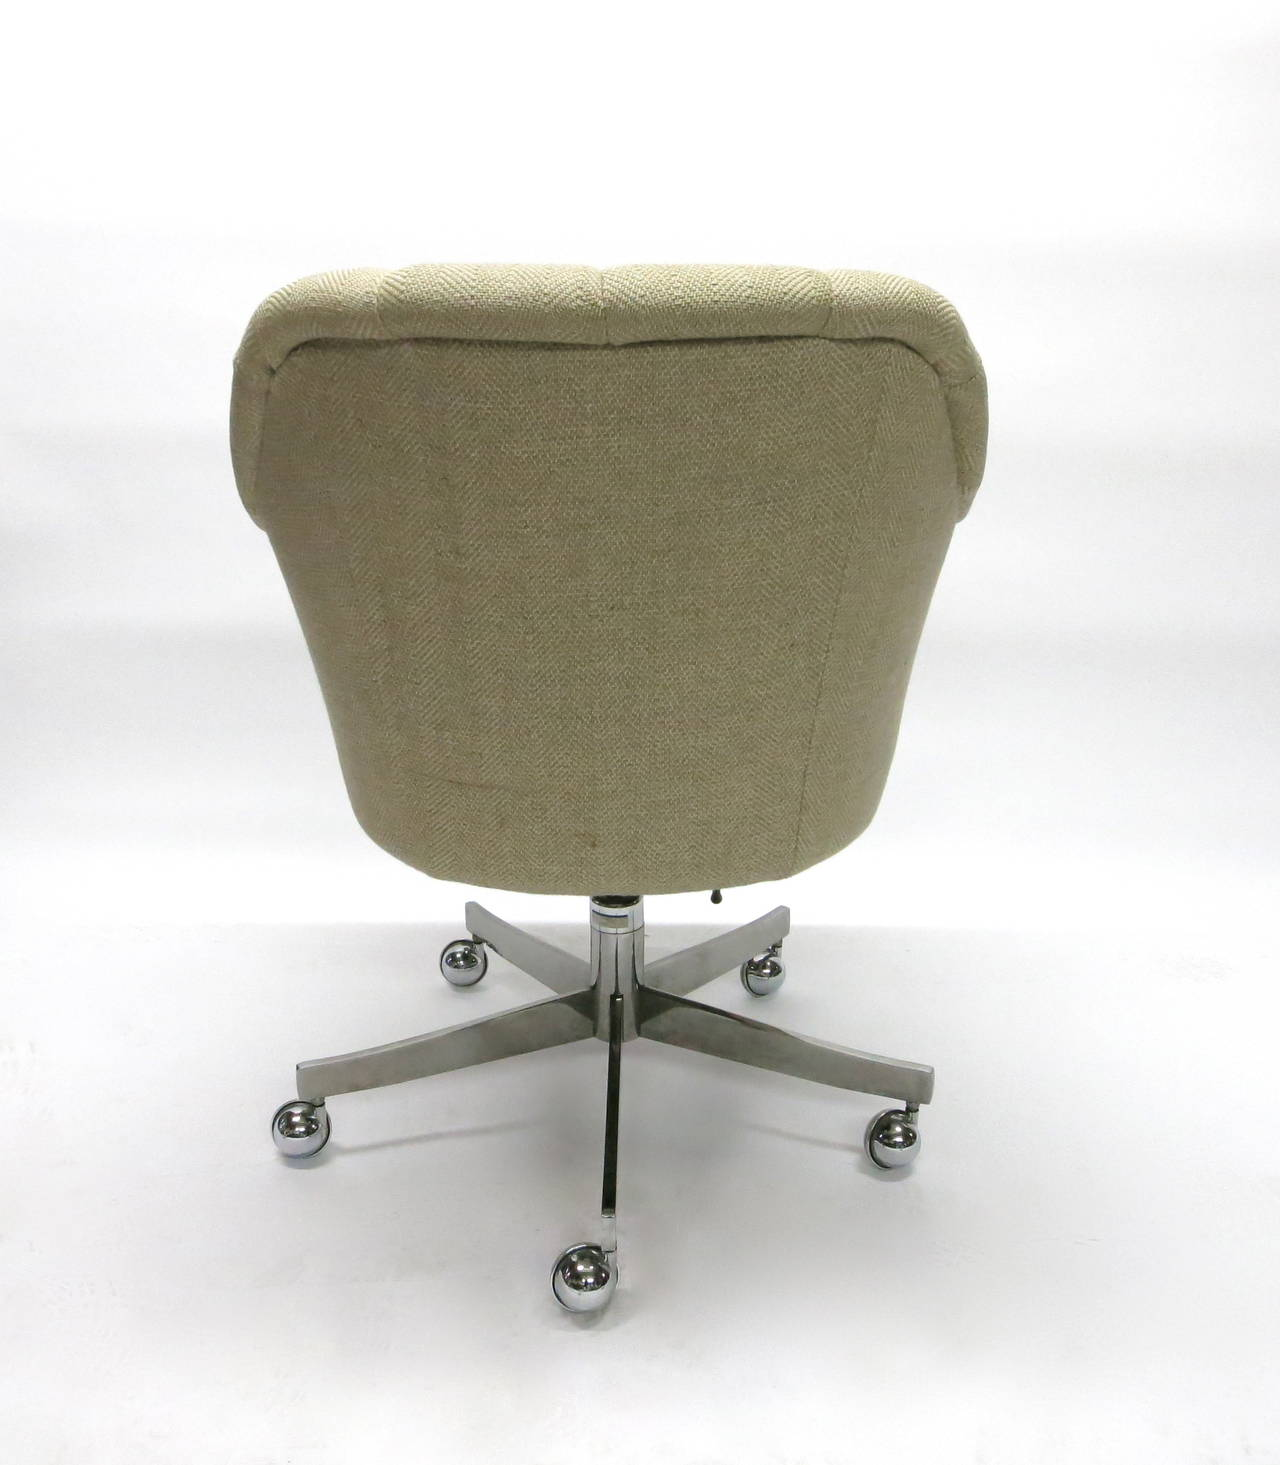 Single Swivel Desk Chair By Ward Bennett For Brickell 1984 Made In USA At 1s